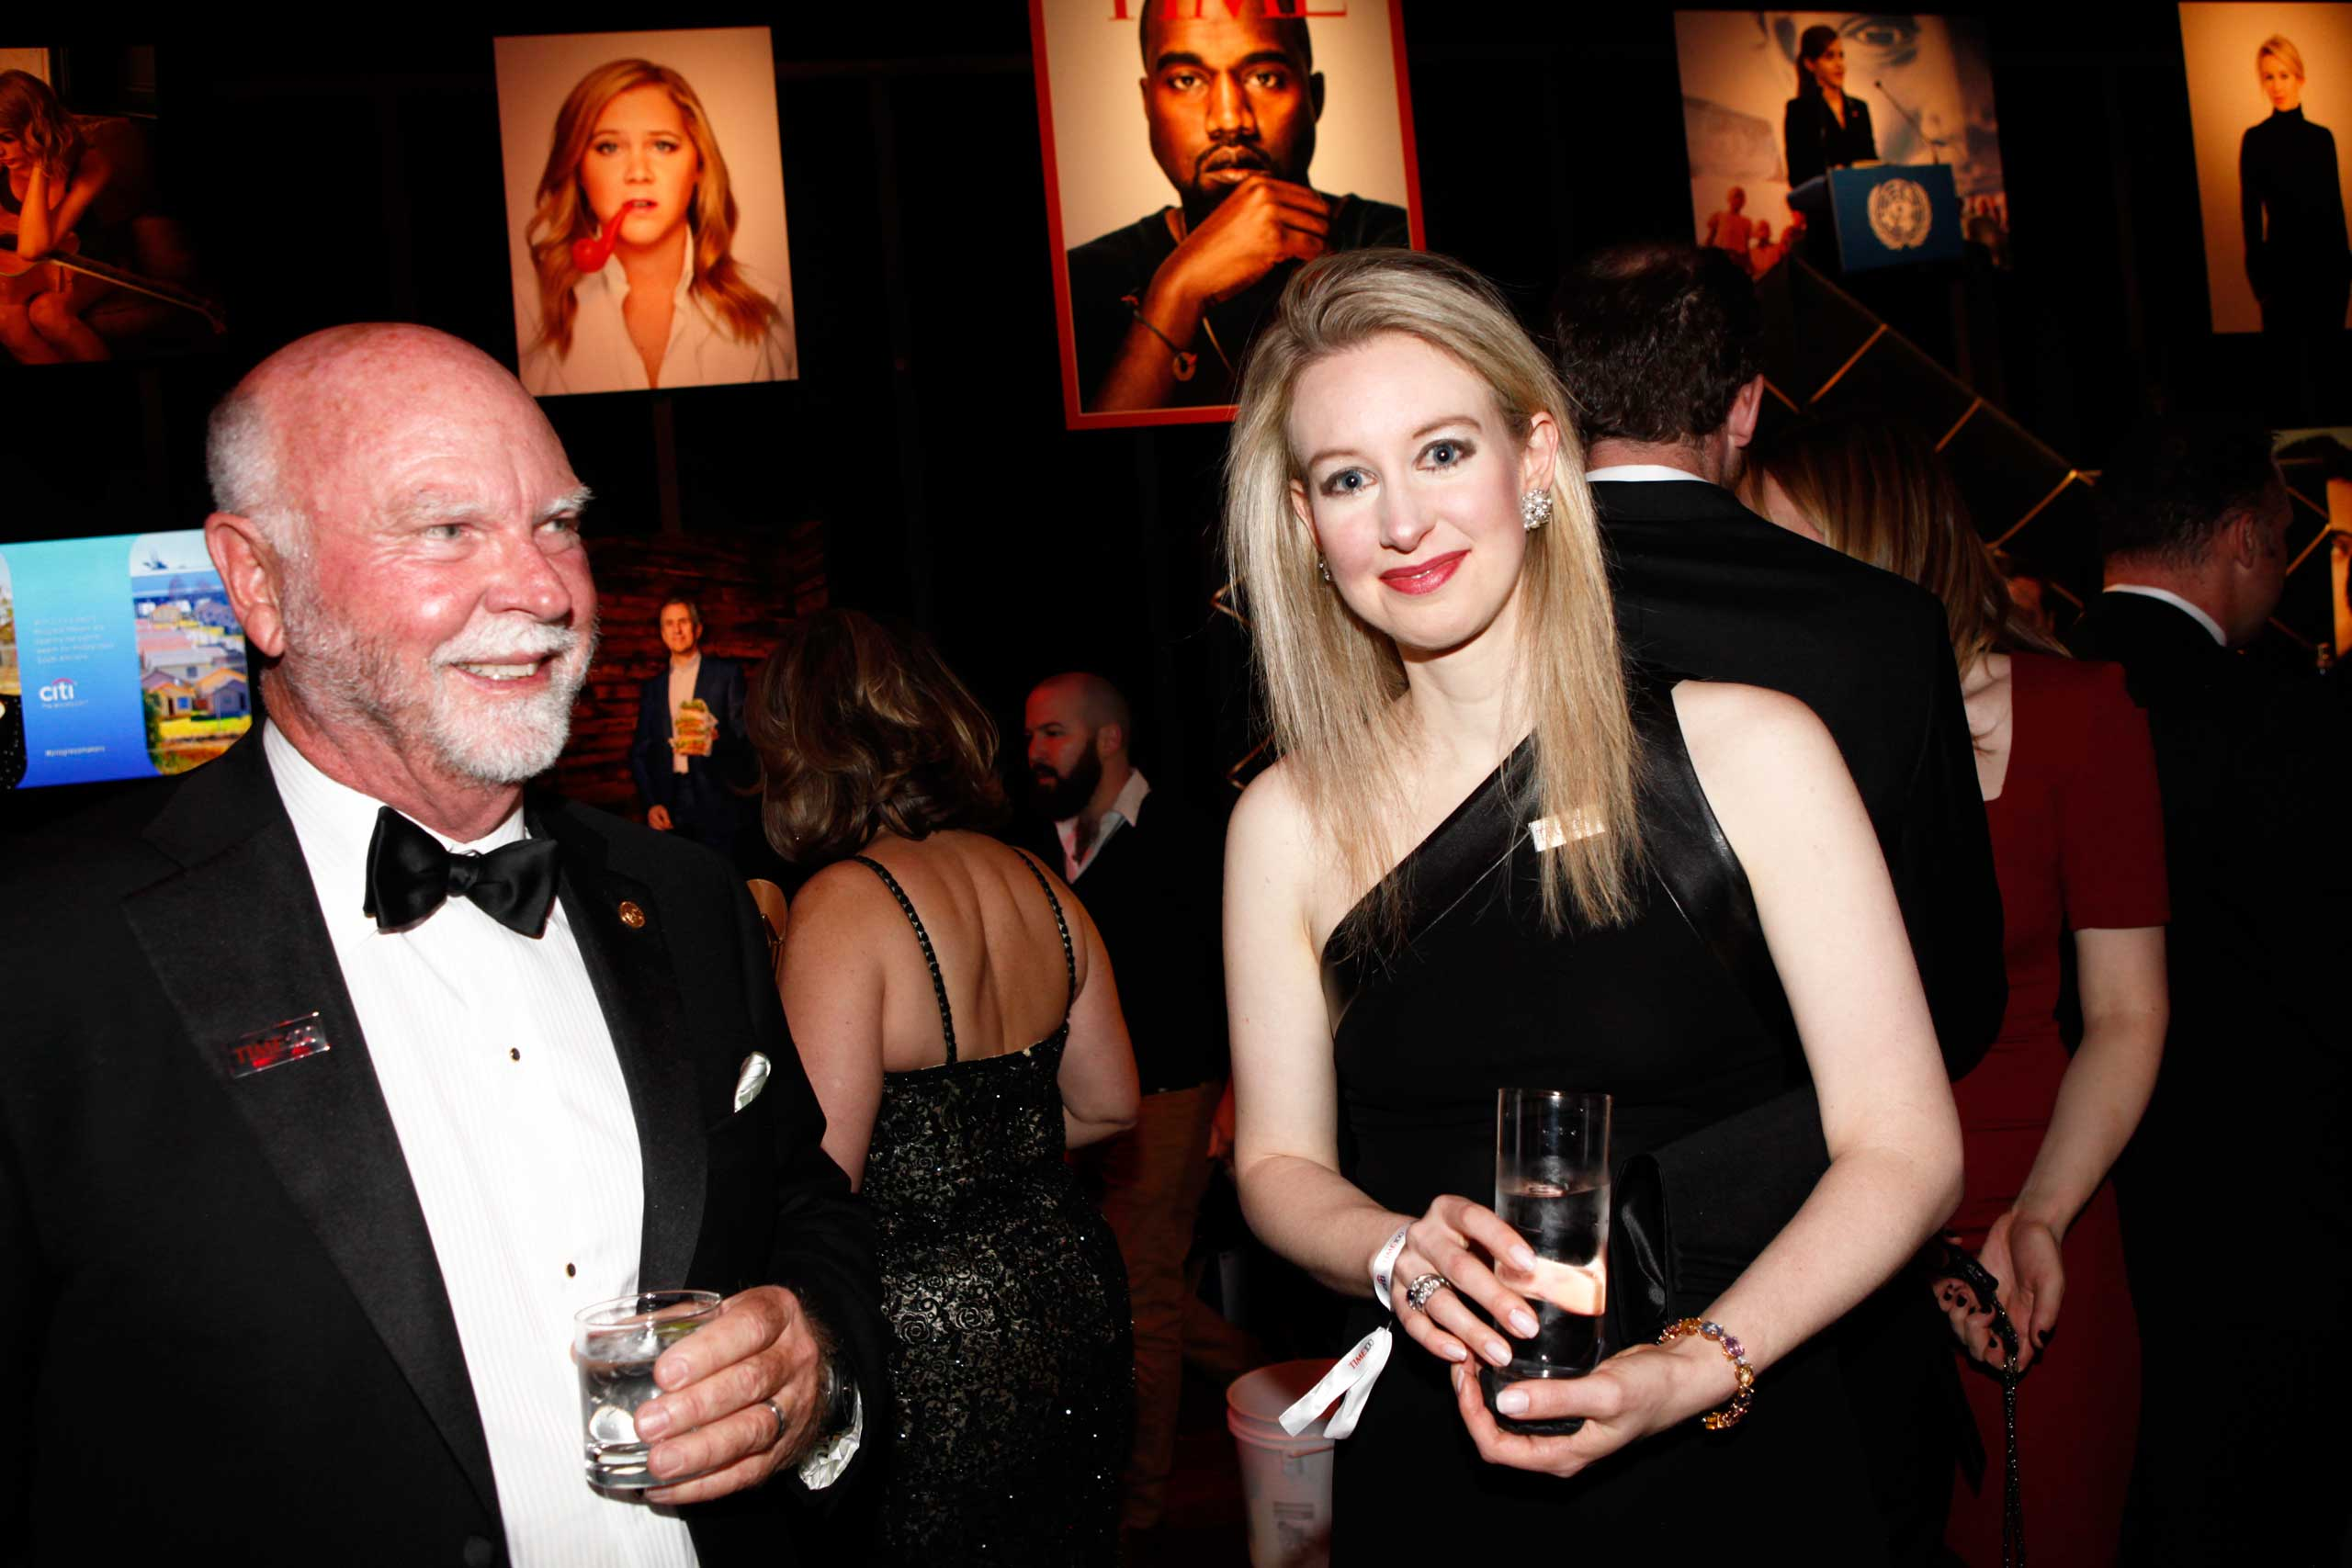 Craig Venter and Elizabeth Holmes attend the TIME 100 Gala at Jazz at Lincoln Center in New York, NY, on Apr. 21, 2015.